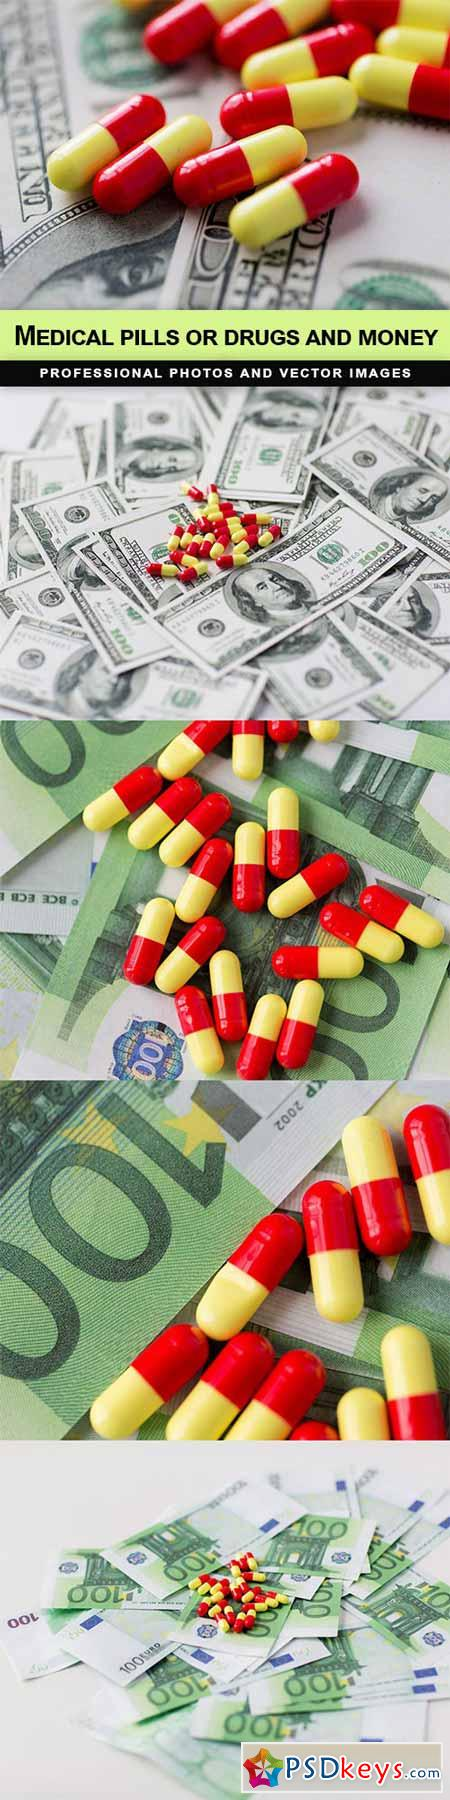 Medical pills or drugs and money - 5 UHQ JPEG